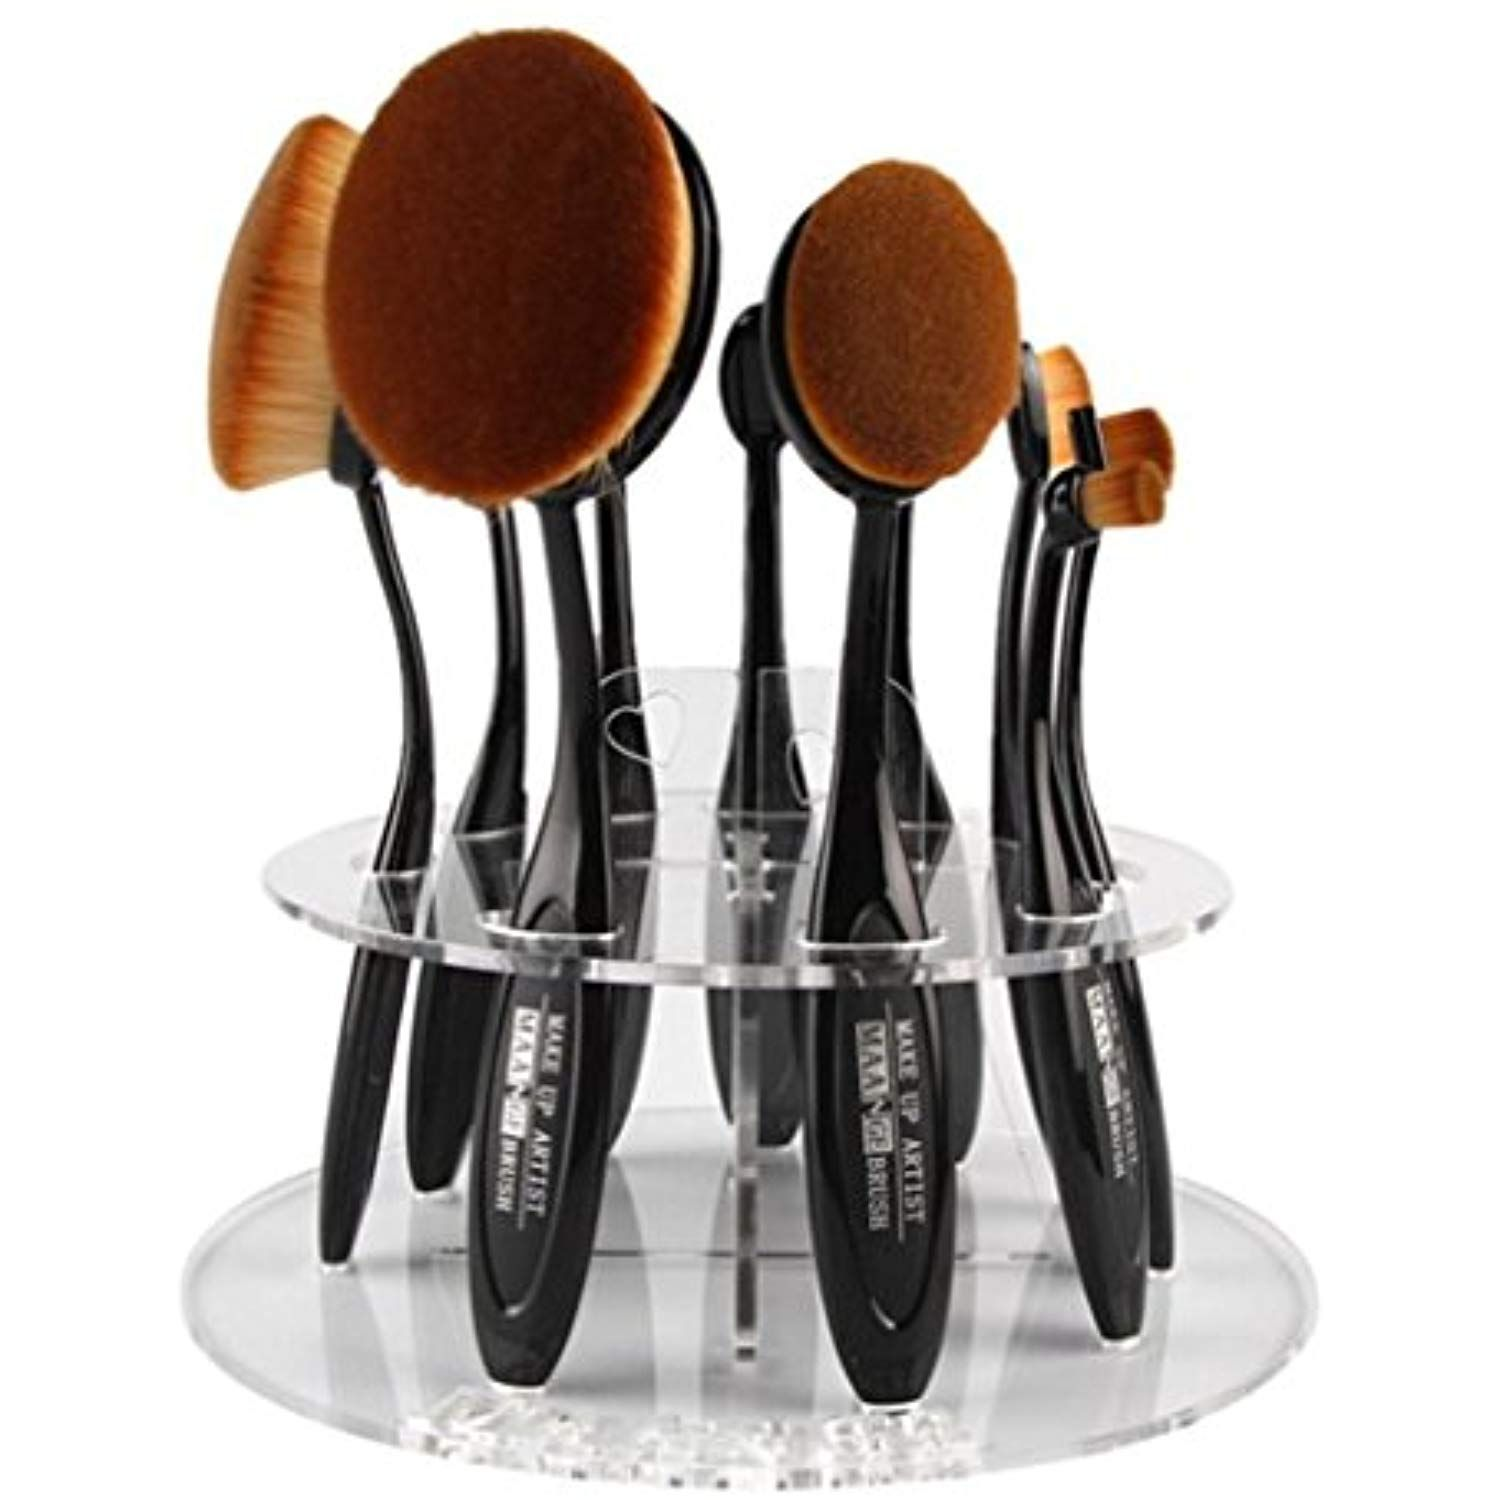 Sinwo 10 Hole Oval Makeup Brush Holder (without 10 brushes